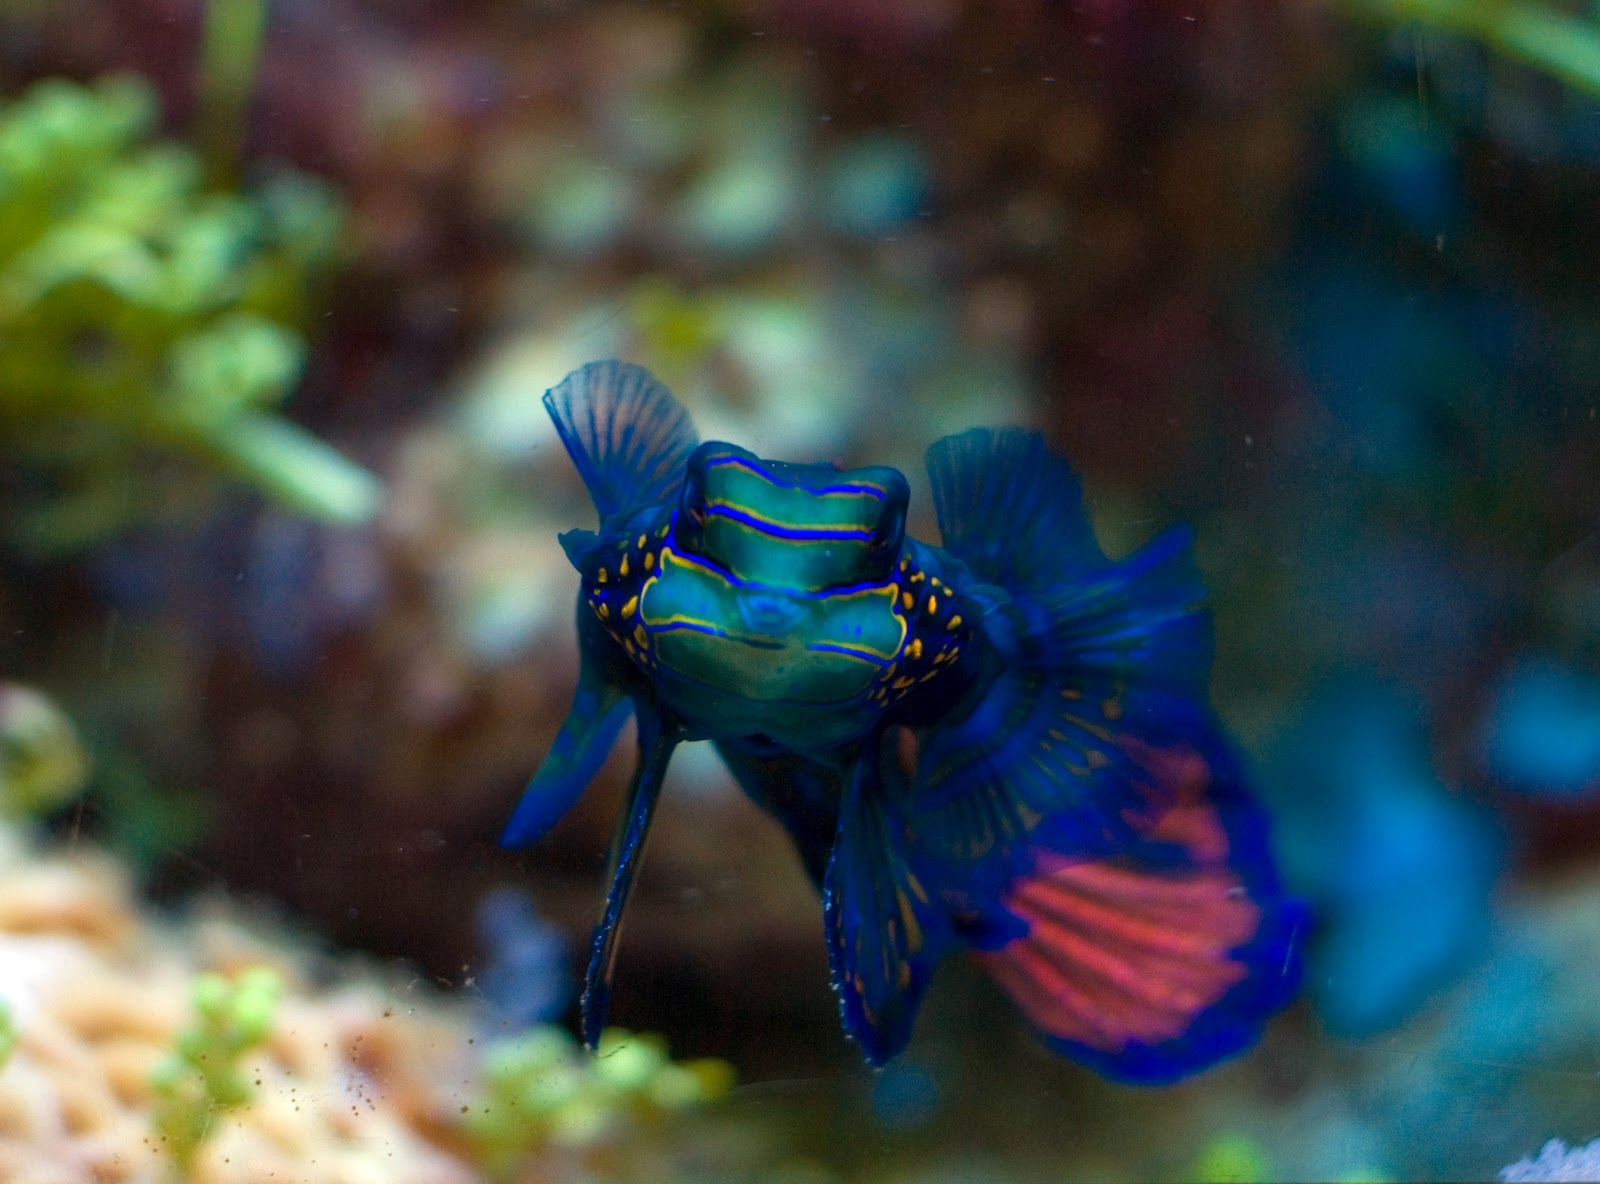 Top 3 Most Beautiful Fish Animal Photo